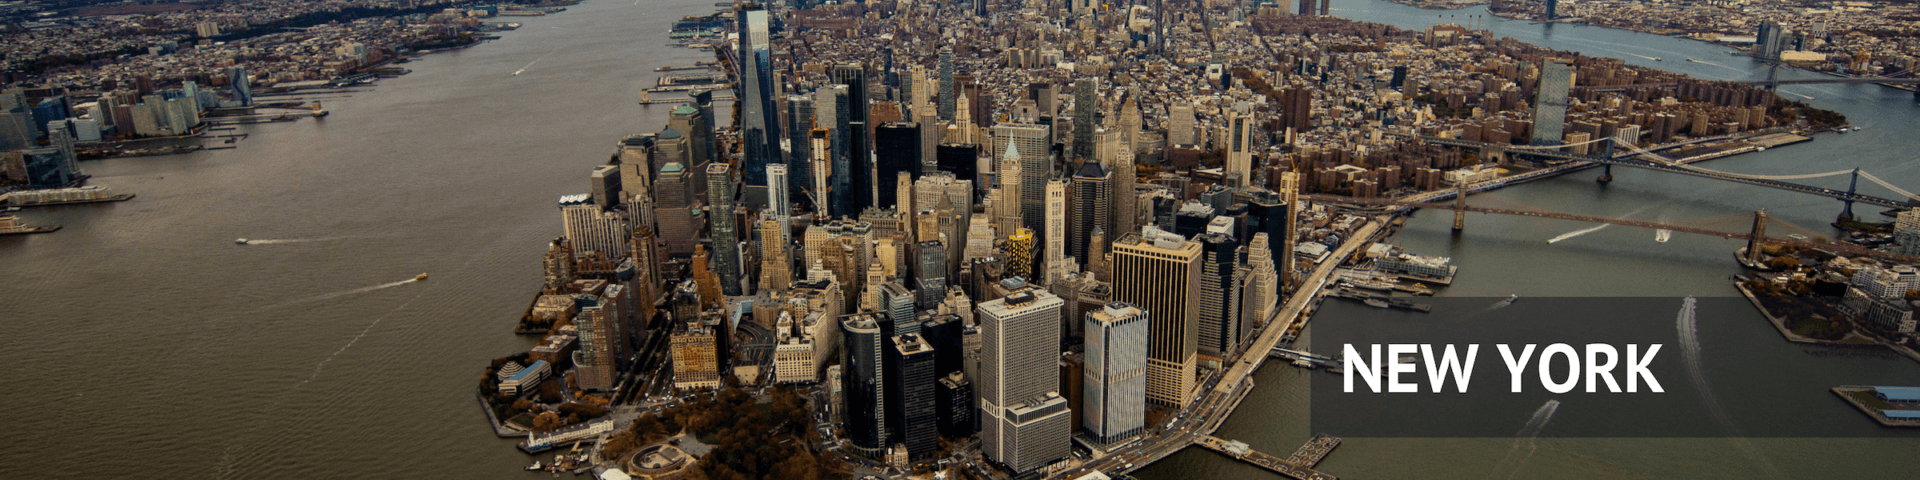 New York header